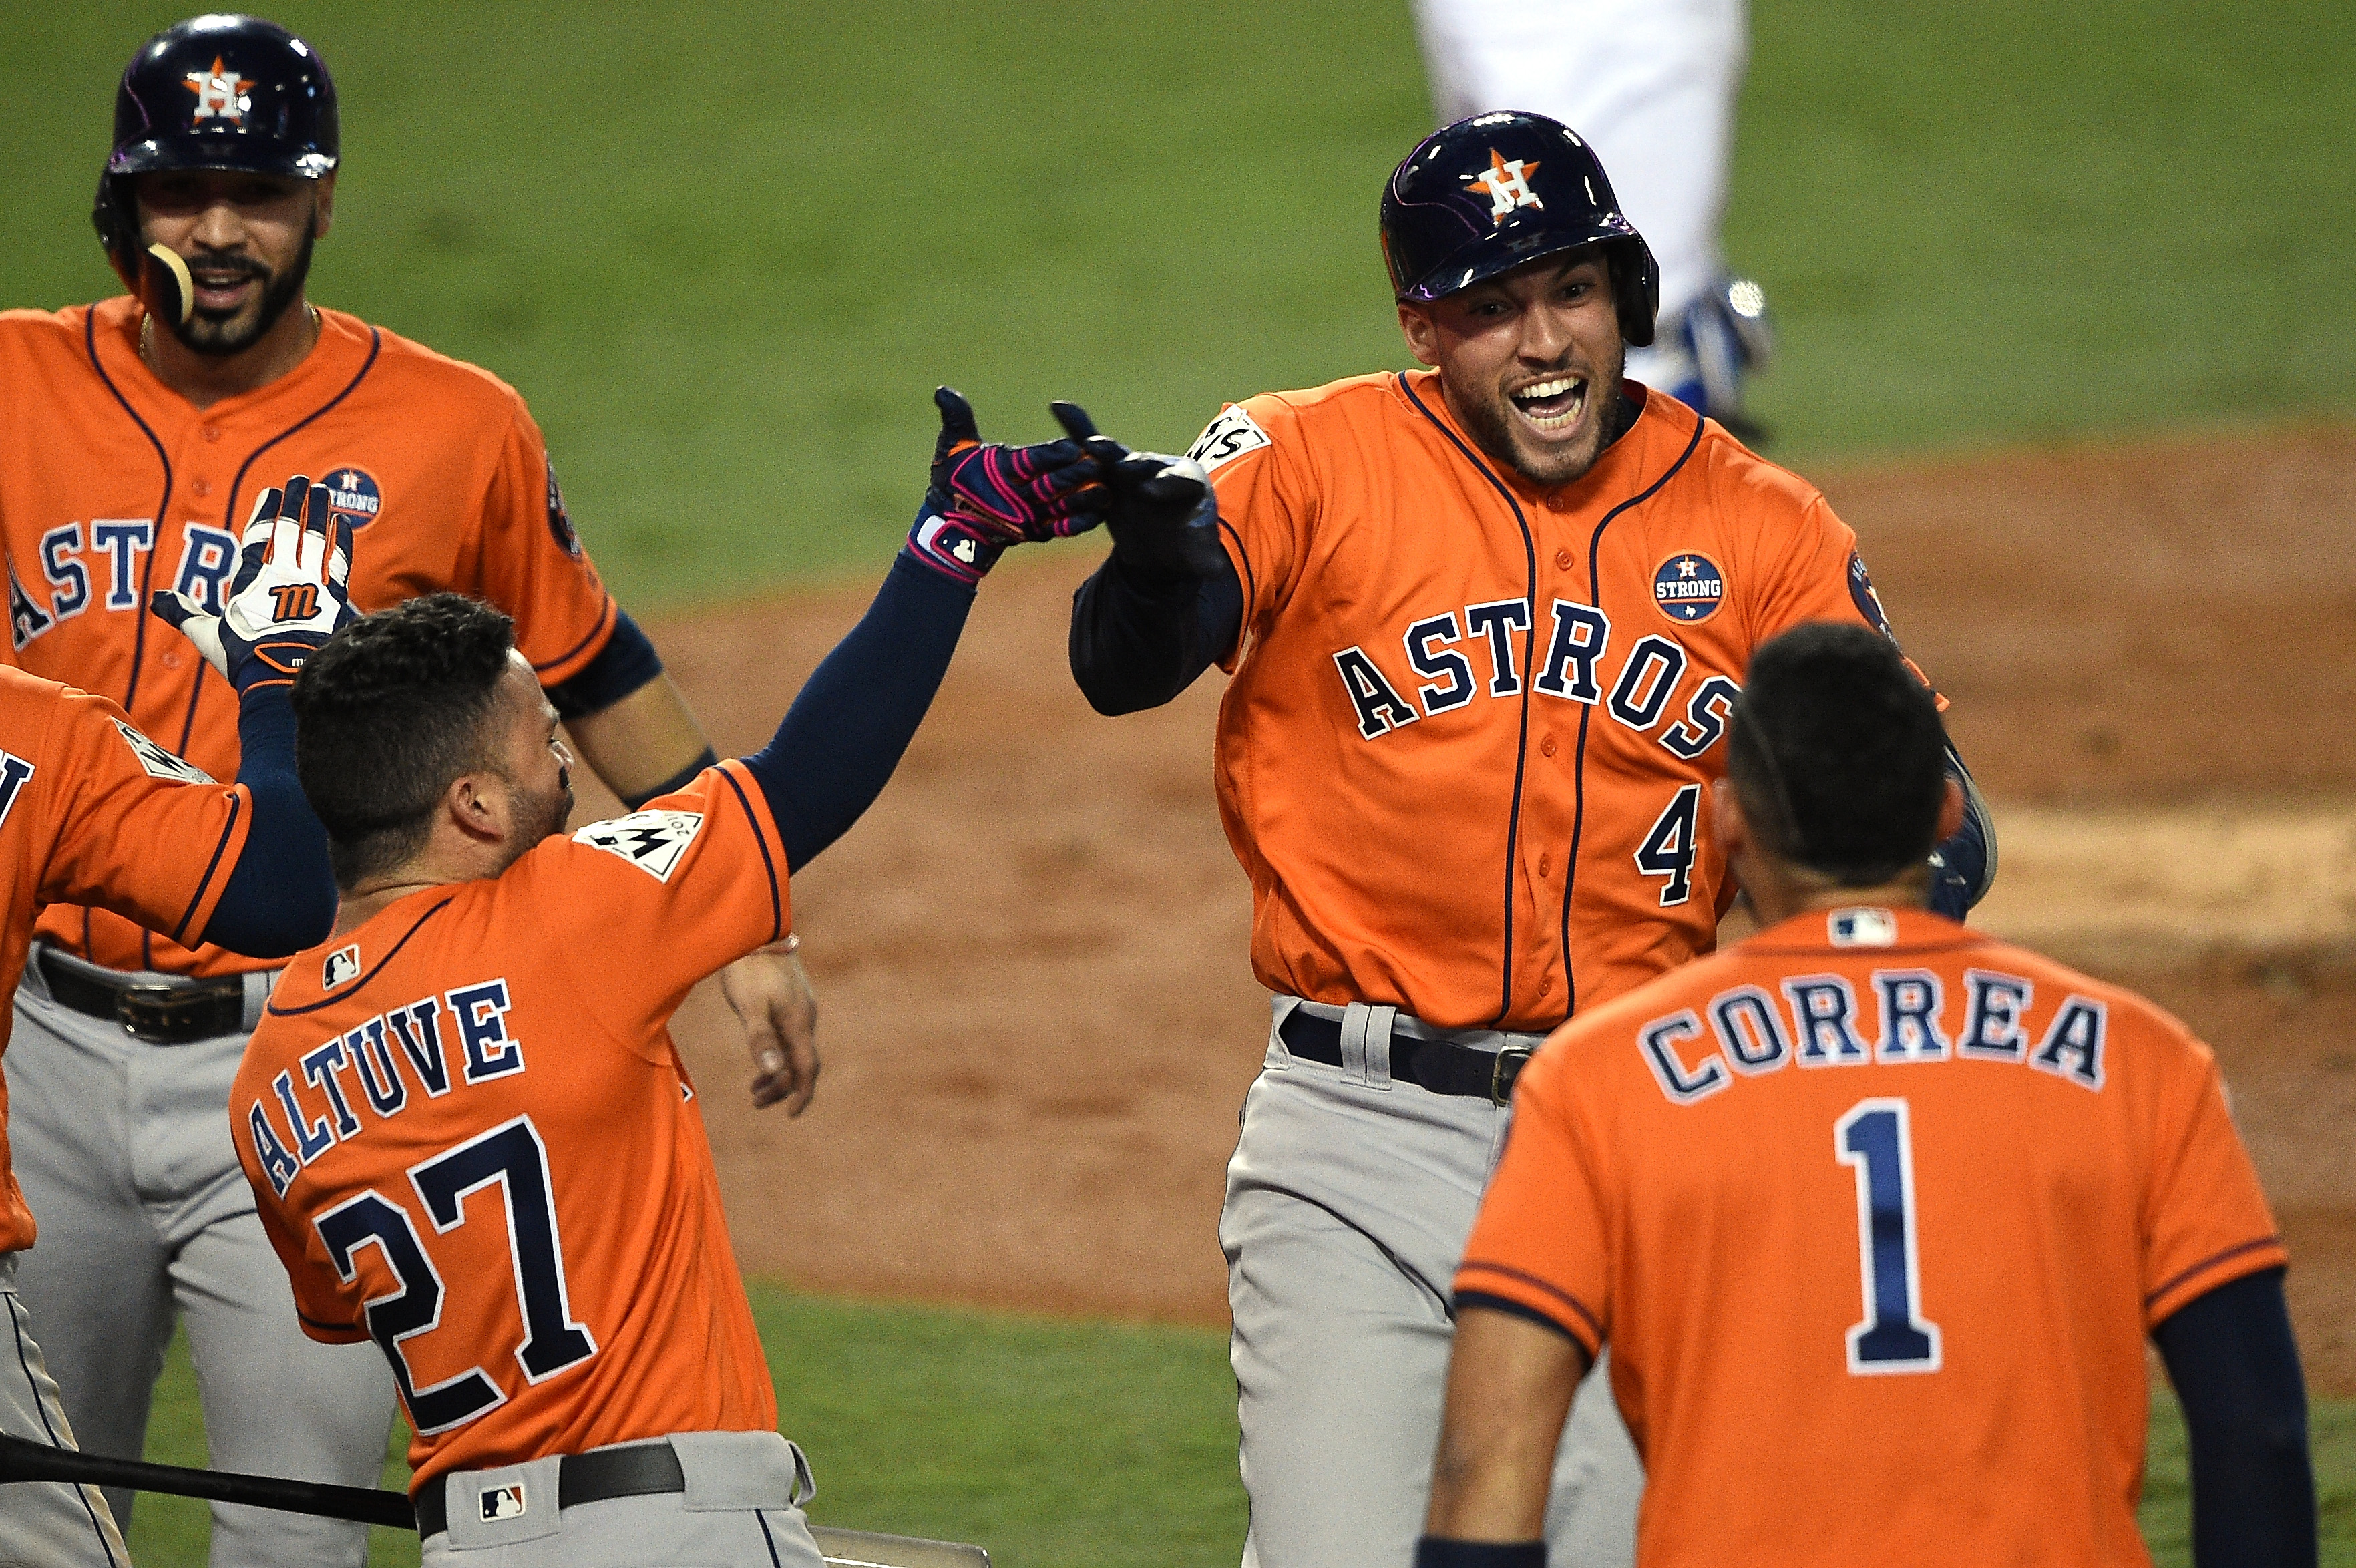 Astros defeat Dodgers 5-1 in Game 7 to end 55-year championship drought